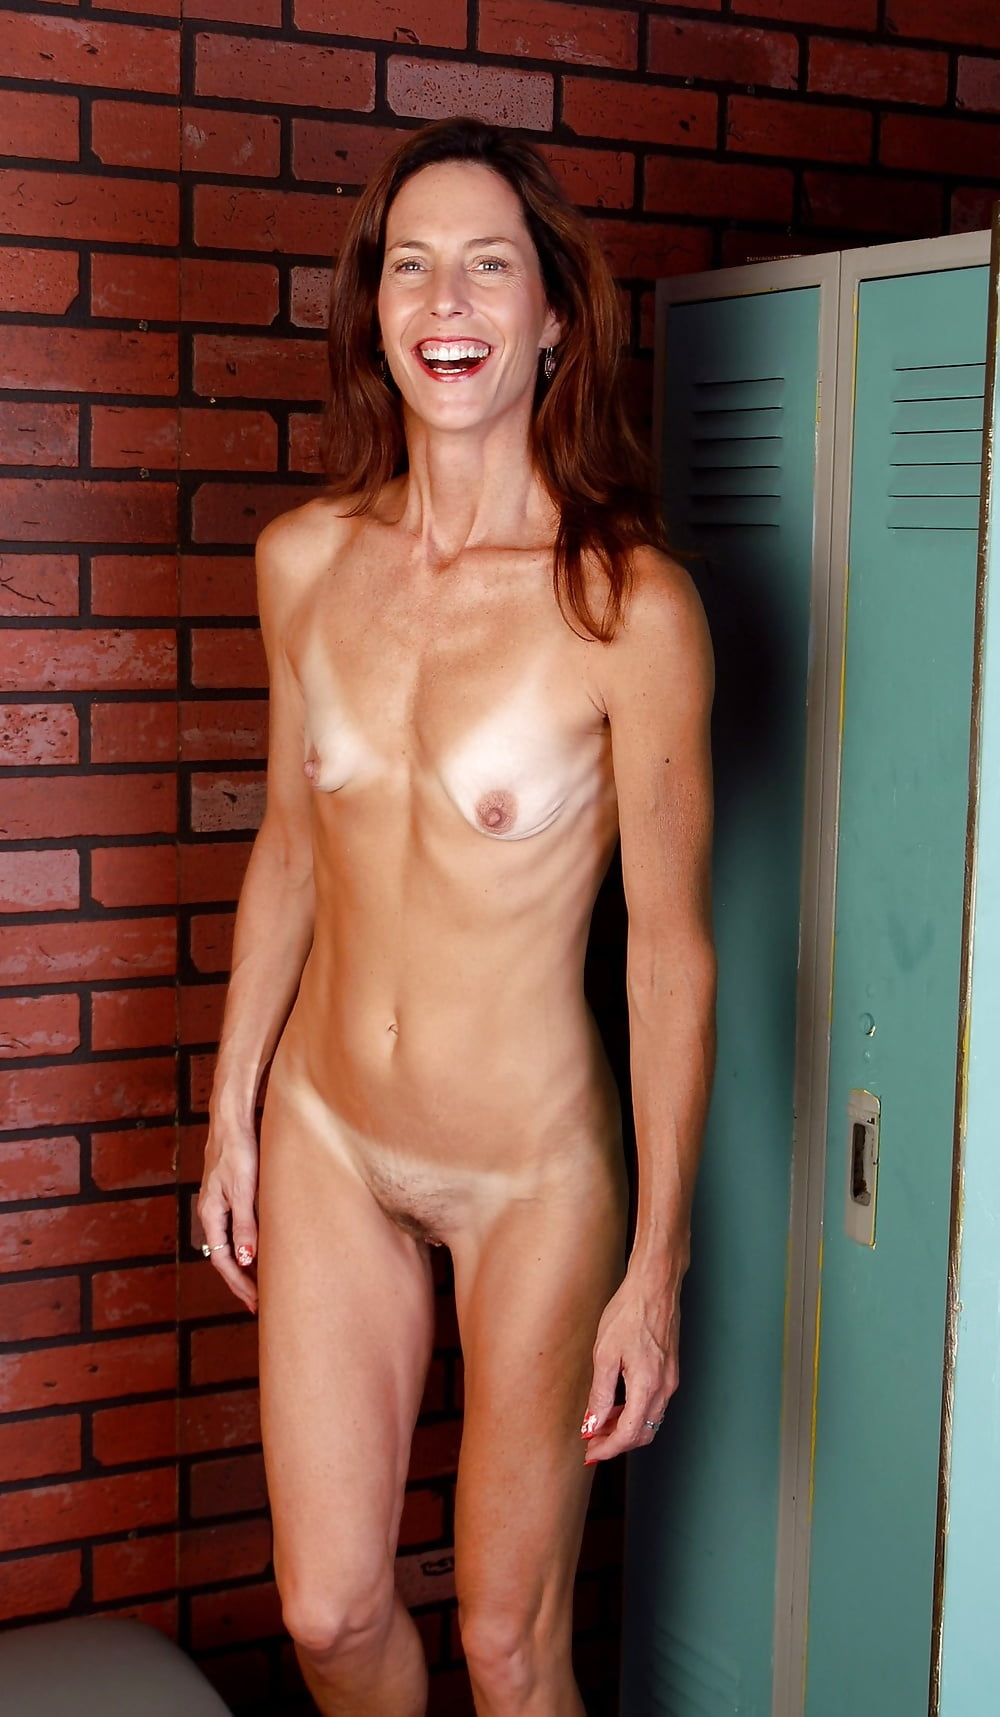 Moms flat chest, naked pictures billy ray cyrus